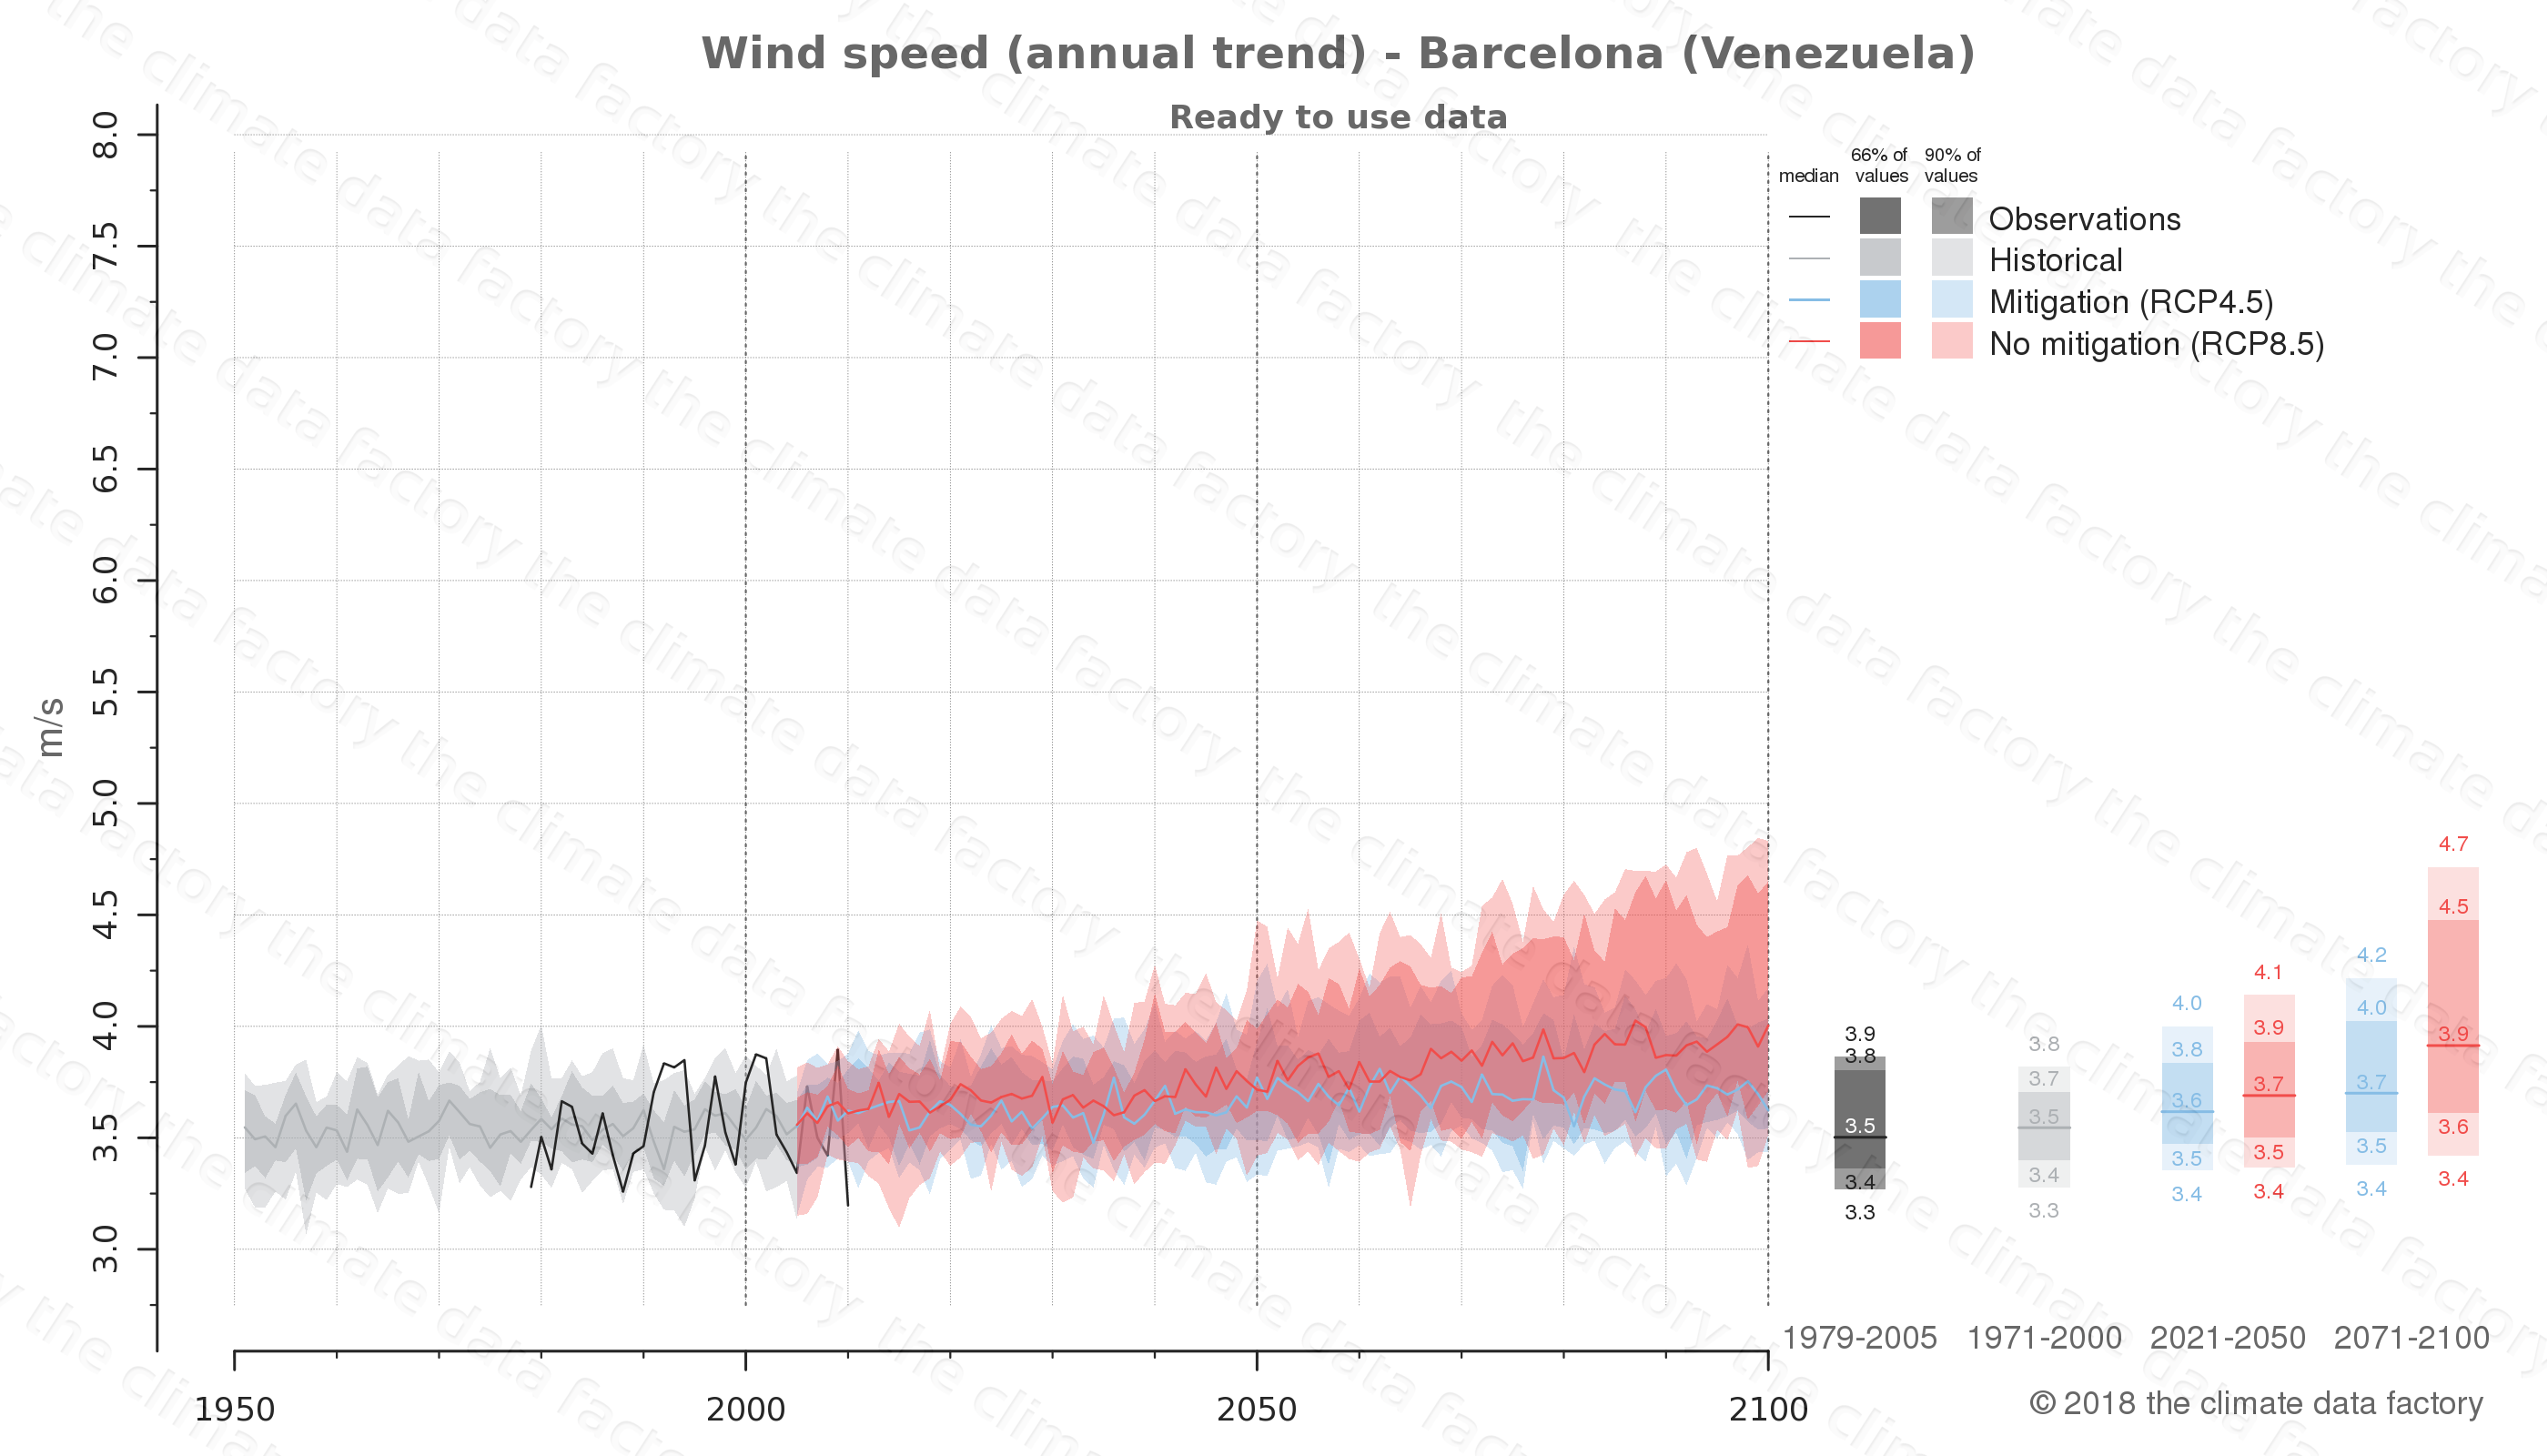 climate change data policy adaptation climate graph city data wind-speed barcelona venezuela